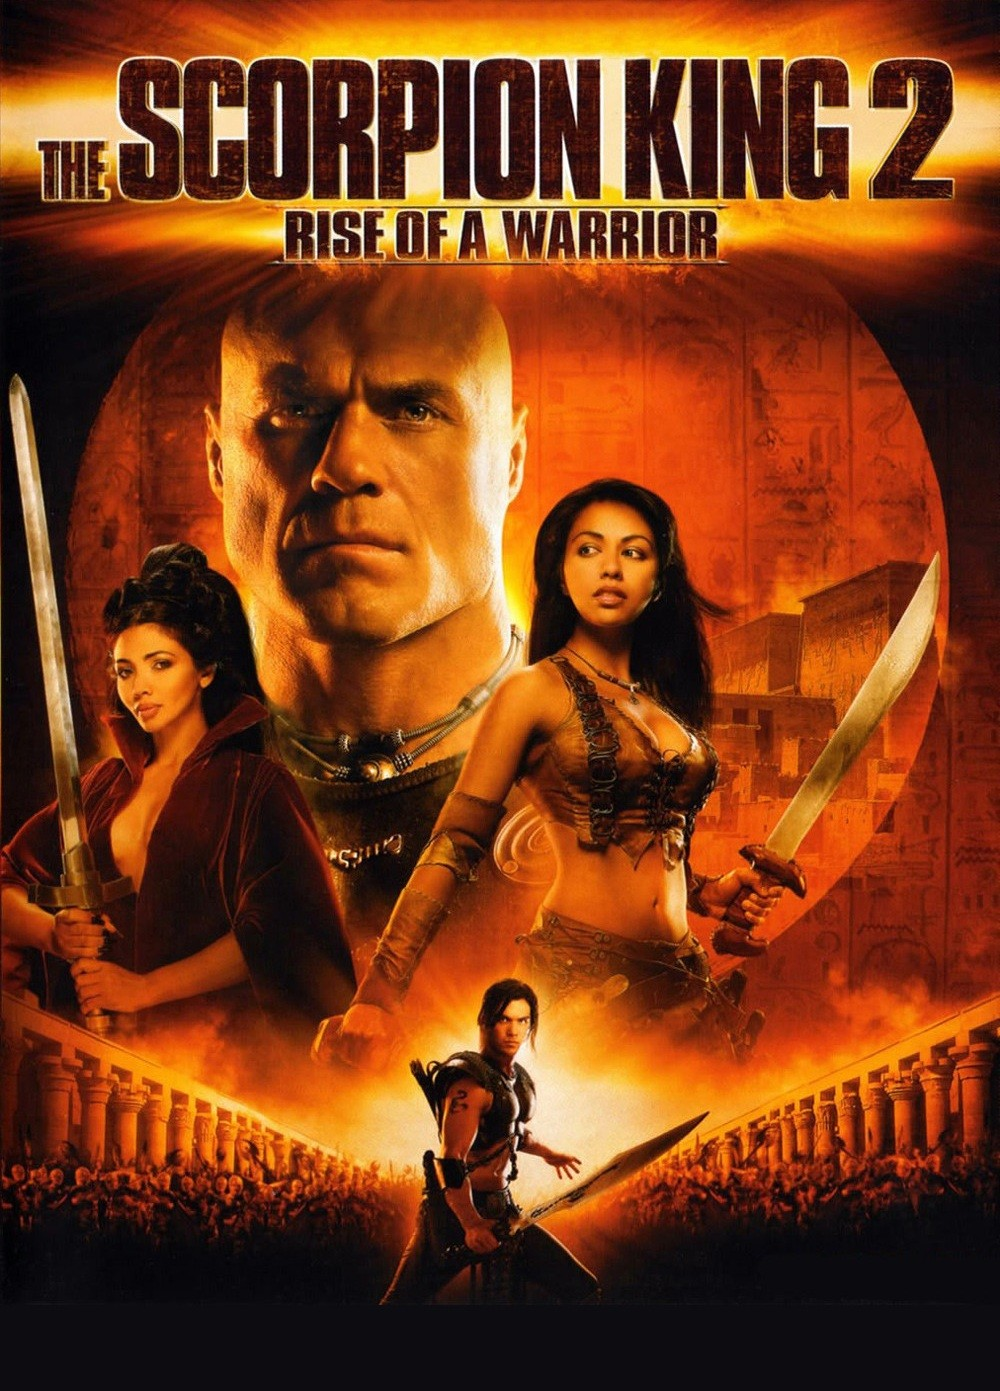 The Scorpion King 2 Rise of a Warrior (2008)